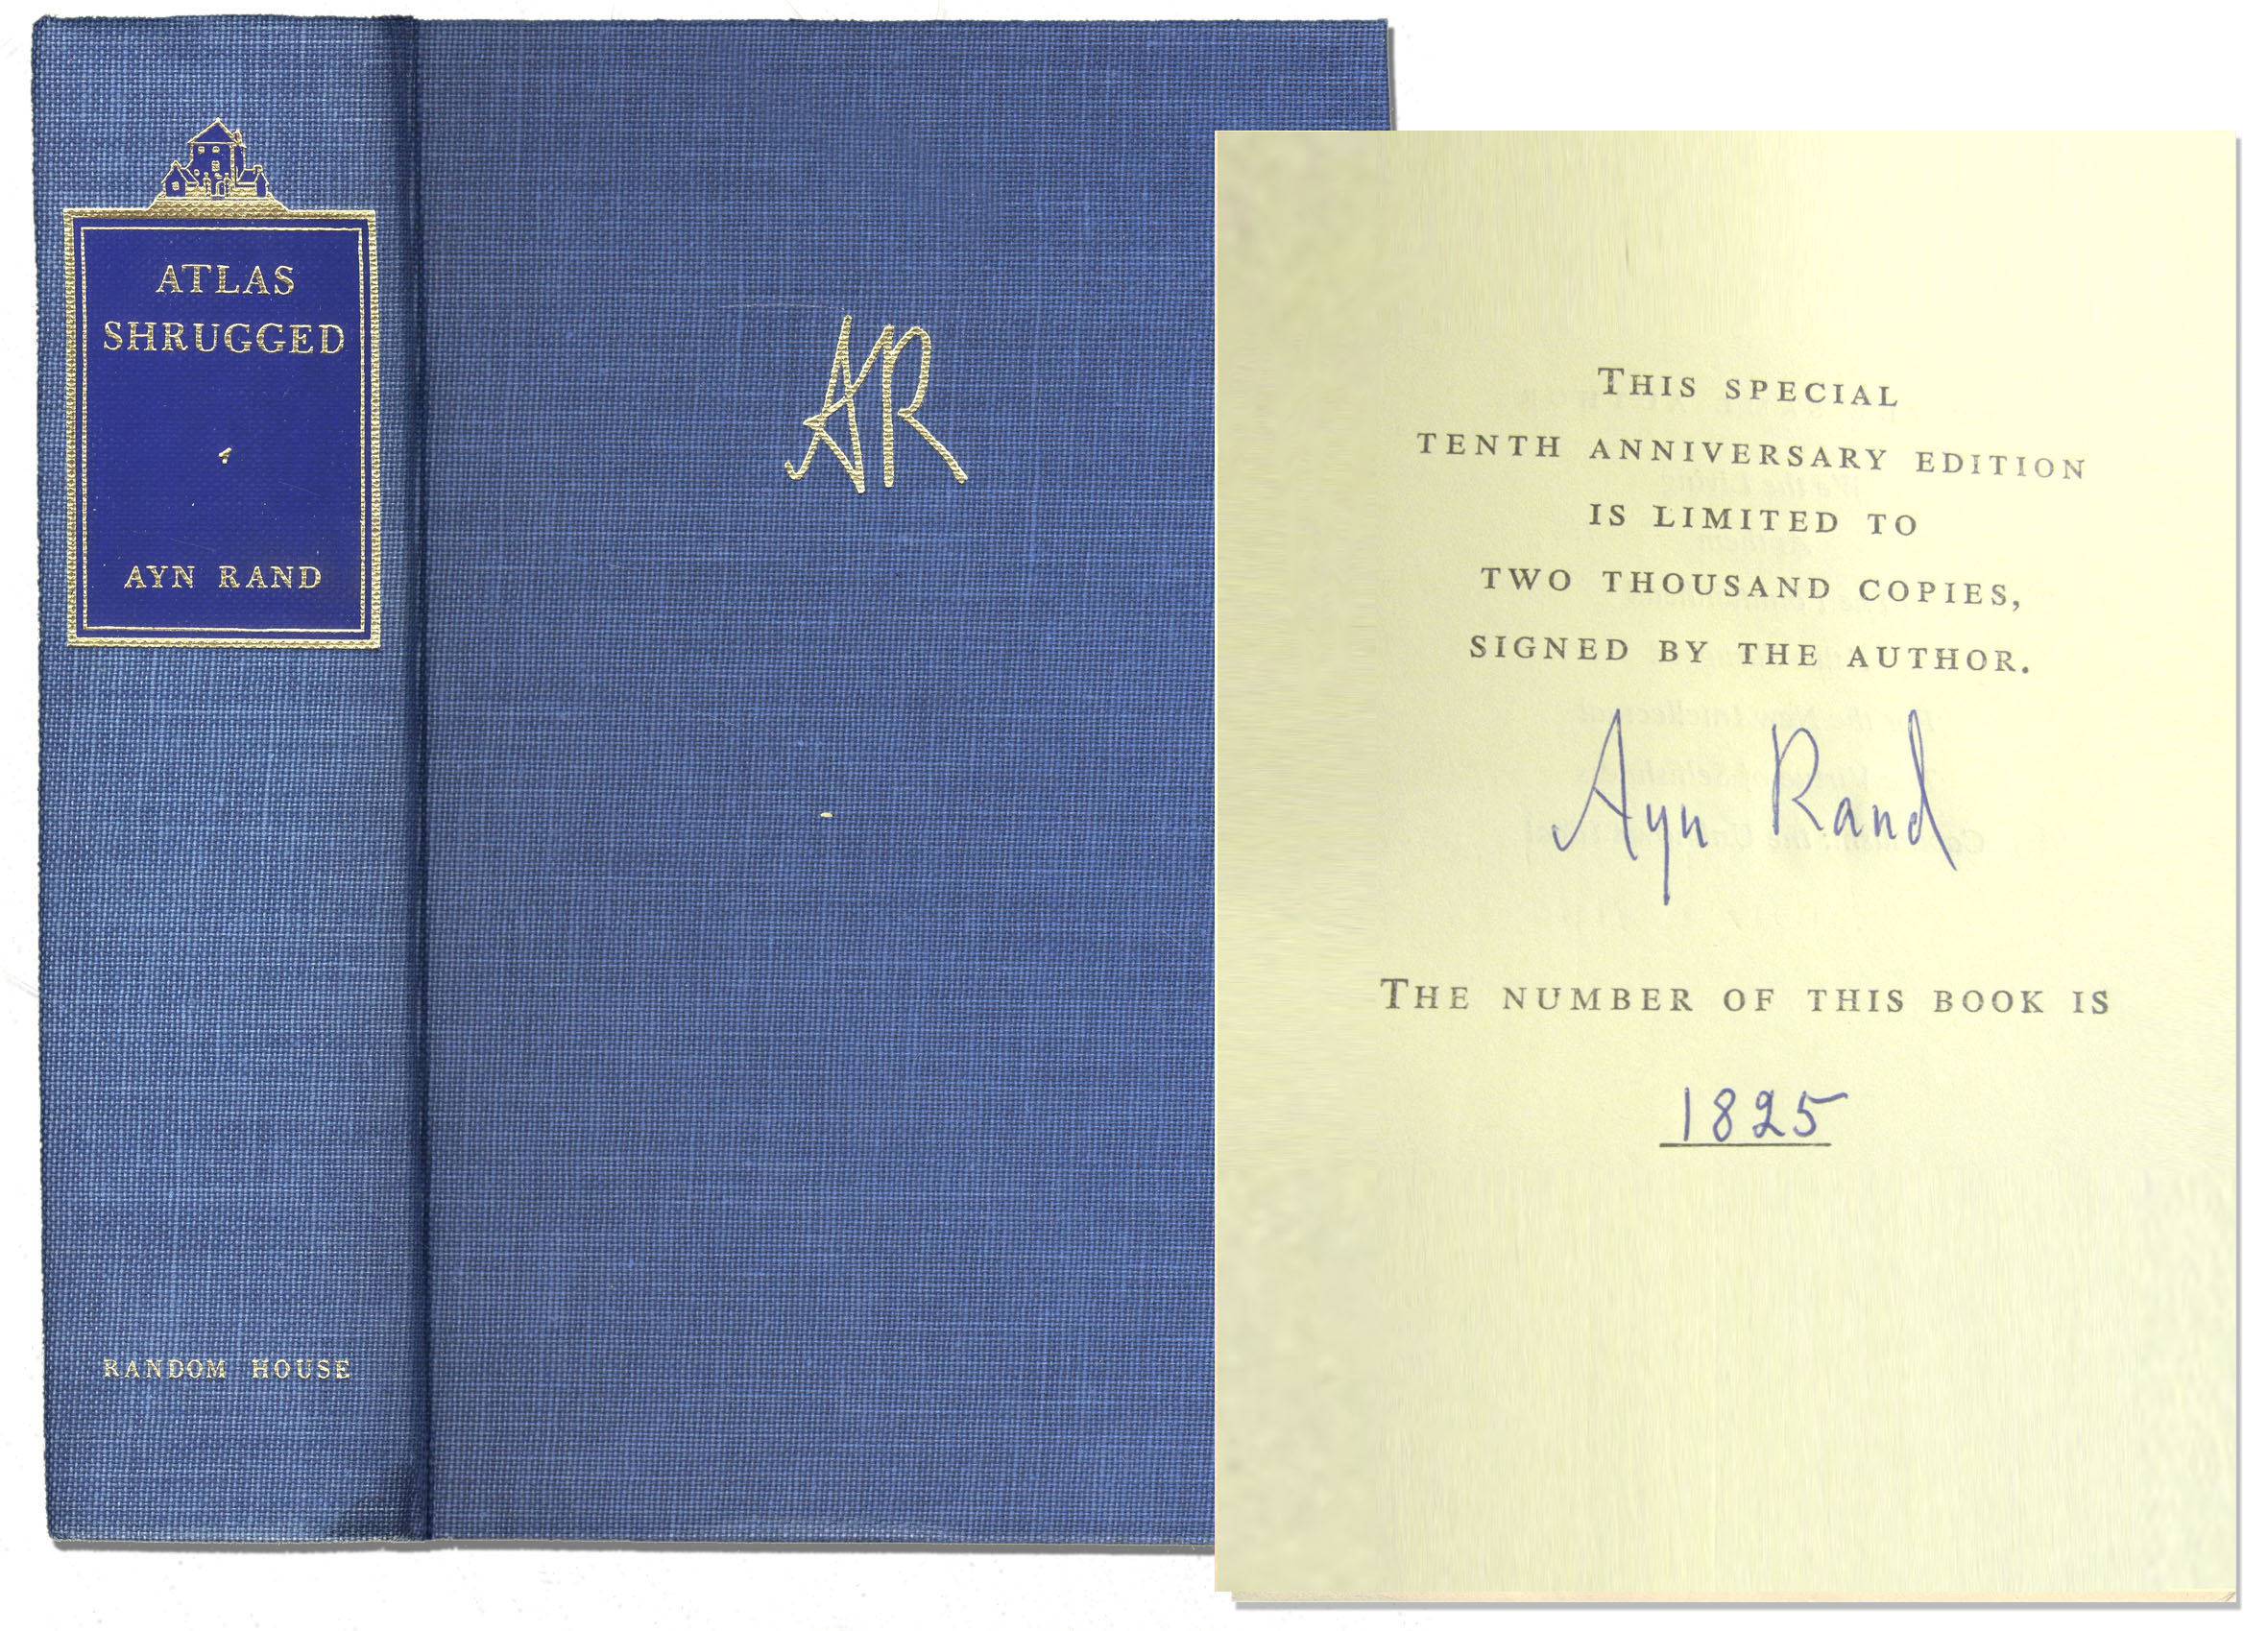 a review of atlas shrugged a science fiction novel by ayn rand Atlas shrugged was the last novel by ayn rand it was published in 1957 by the world's largest book publisher random house  in this lengthy and philosophical novel of ayn rand you will also find romance , suspense and science fiction.